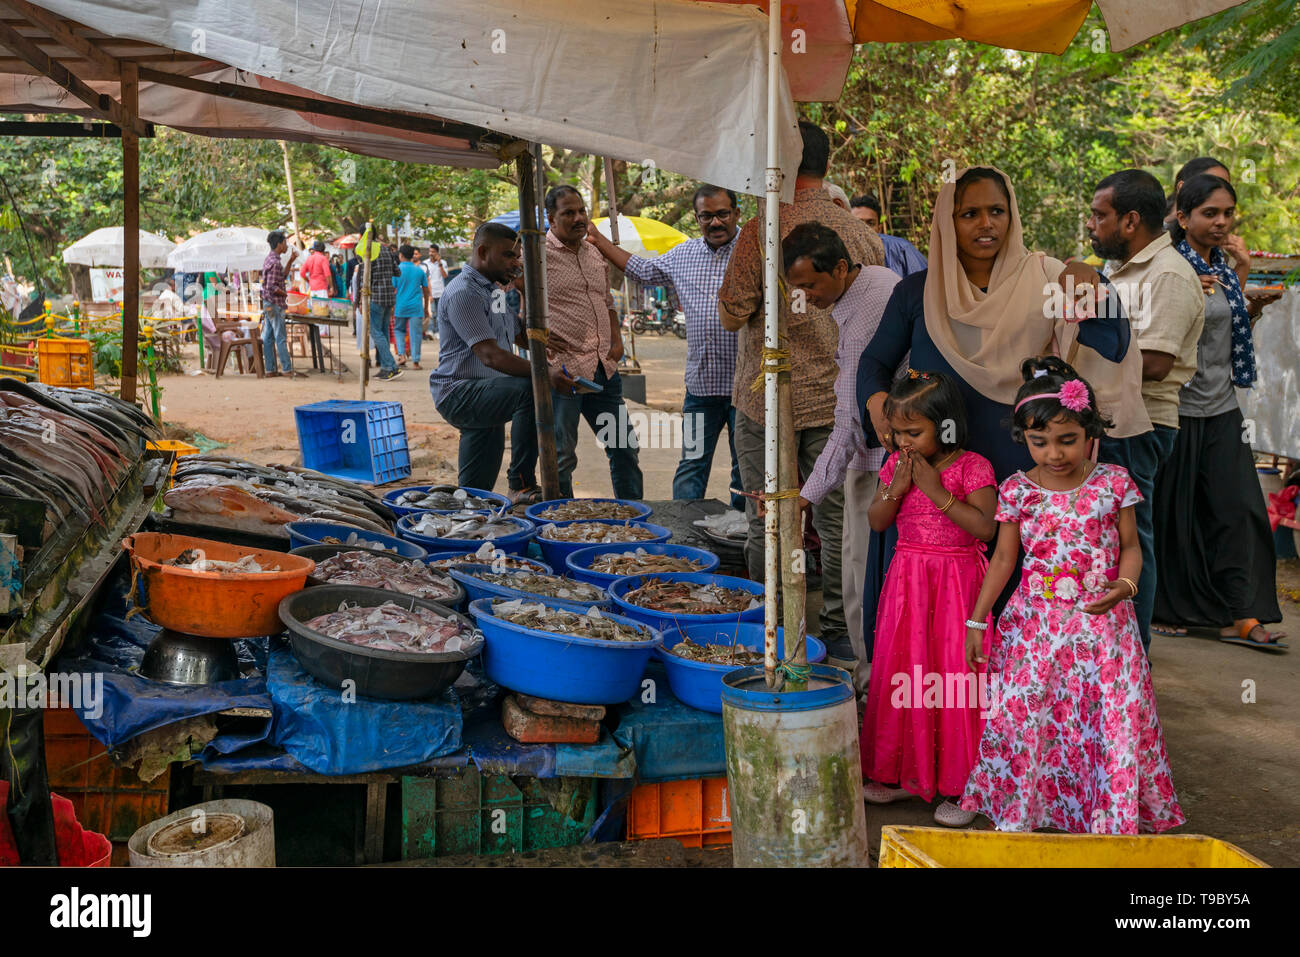 Horizontal view of children squirming at the fish market in Fort Kochi, India. - Stock Image